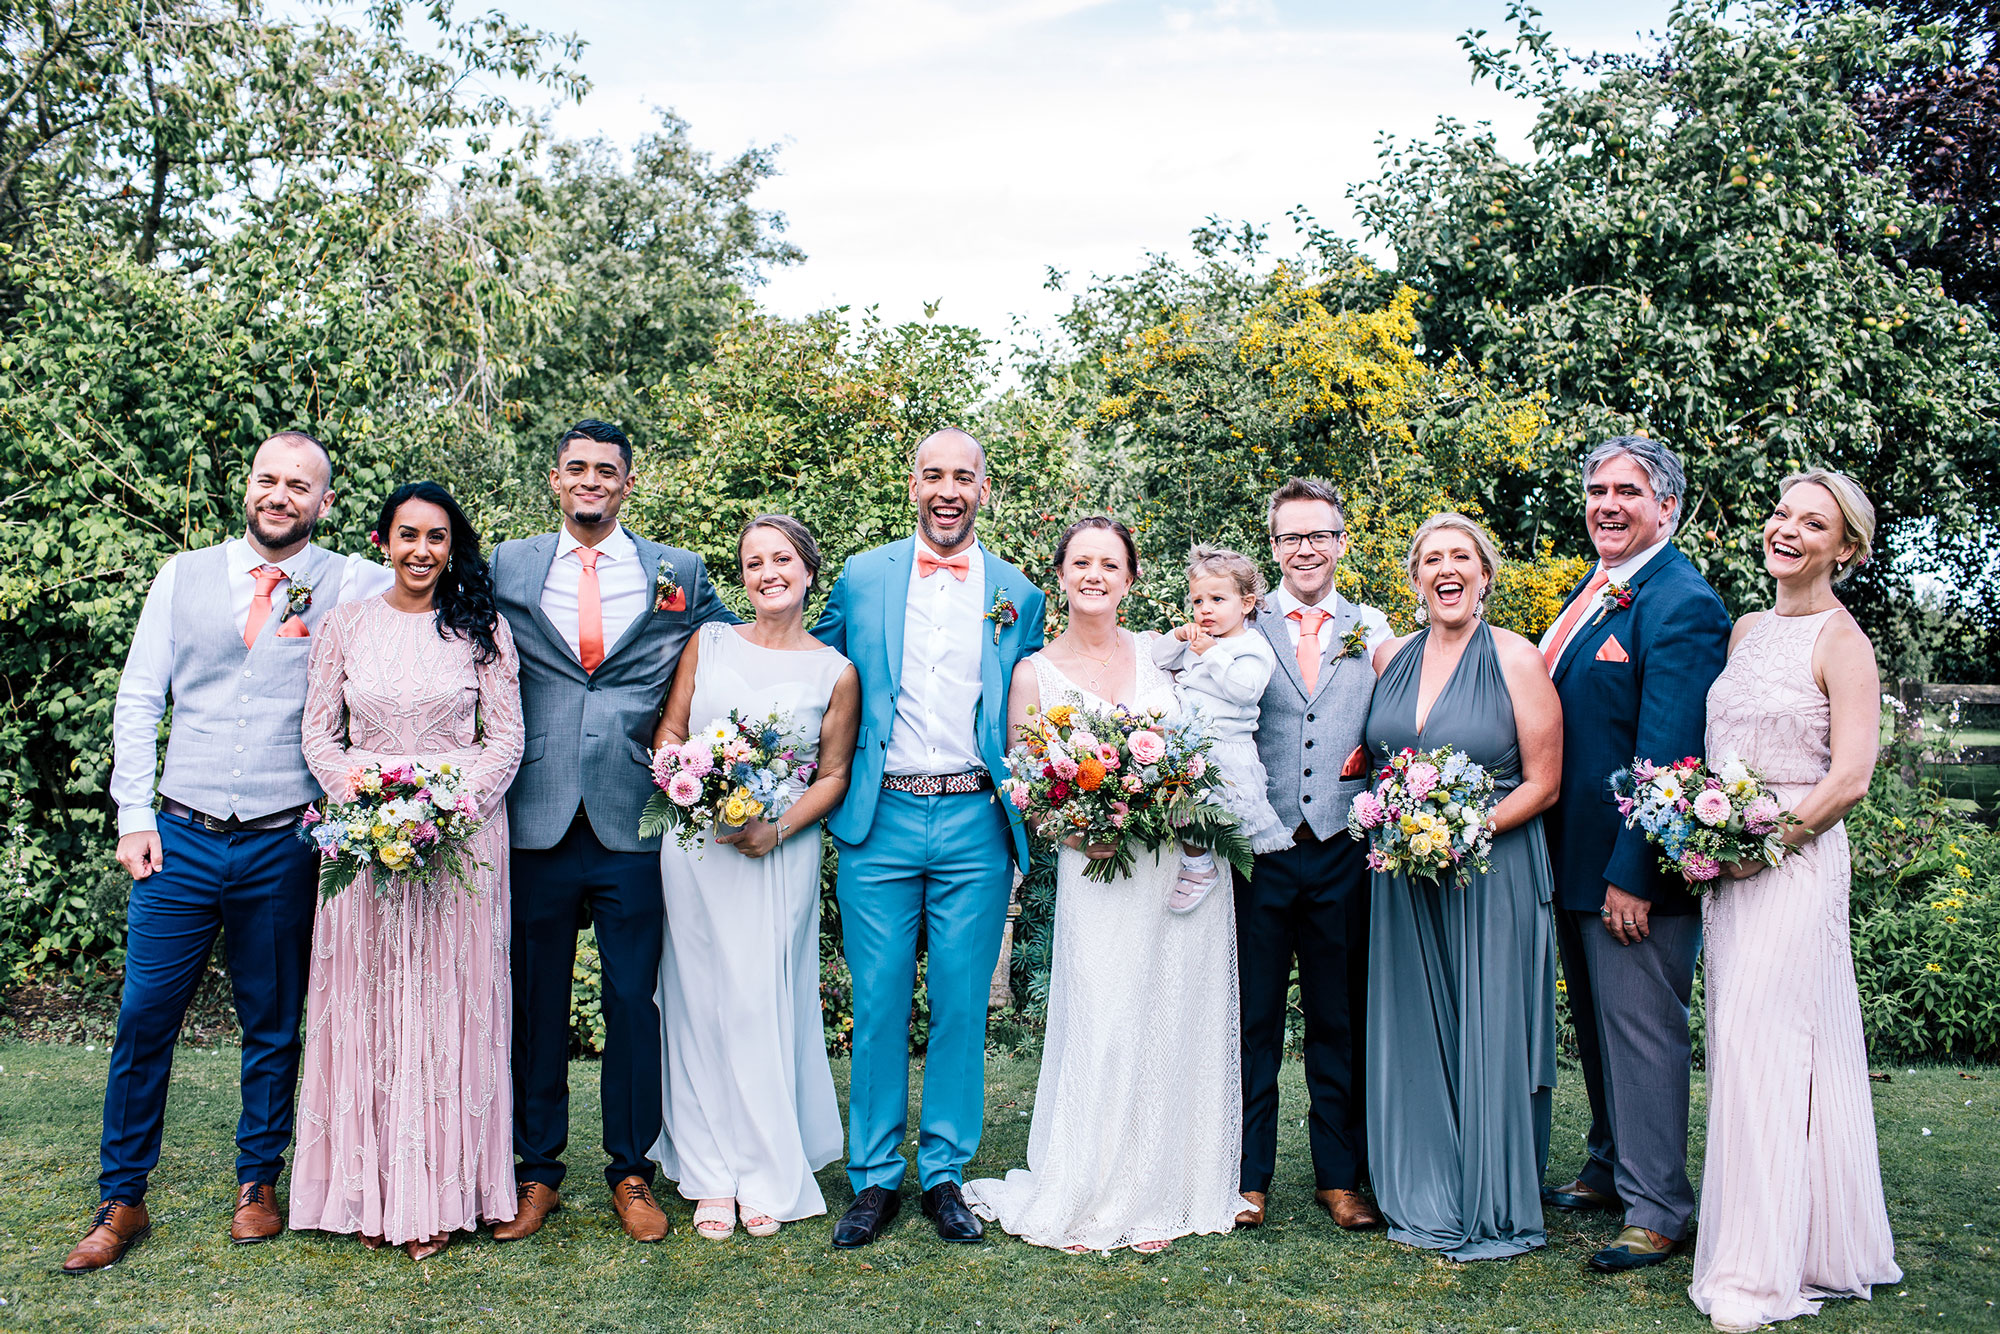 groom wearing bright blue wedding suit standing for a group shot with his bride and family at Seymour court wedding venue in beckington